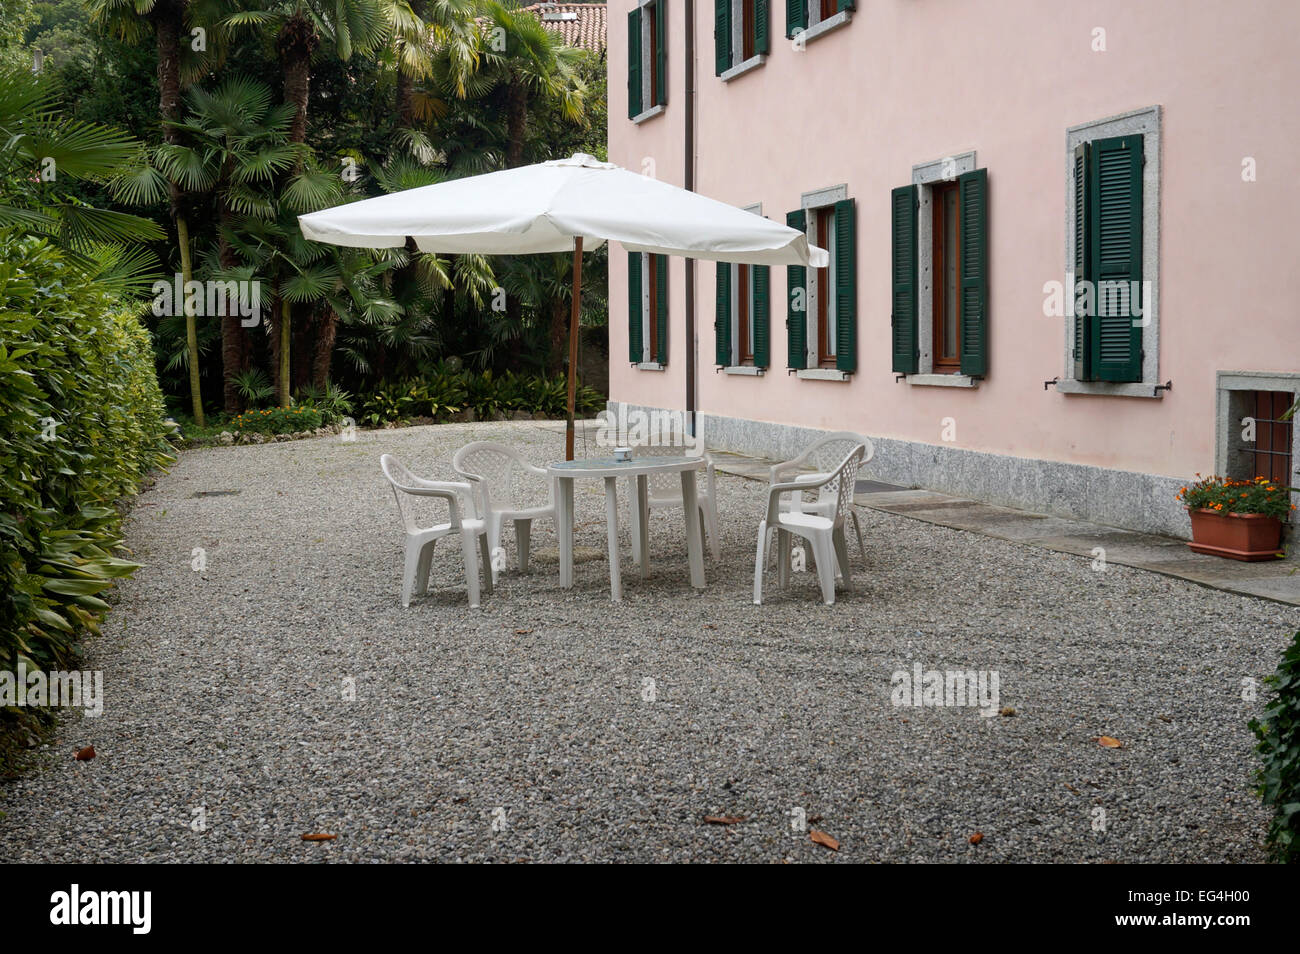 Secluded garden patio with garden table and chairs and sunshade umbrella - Stock Image